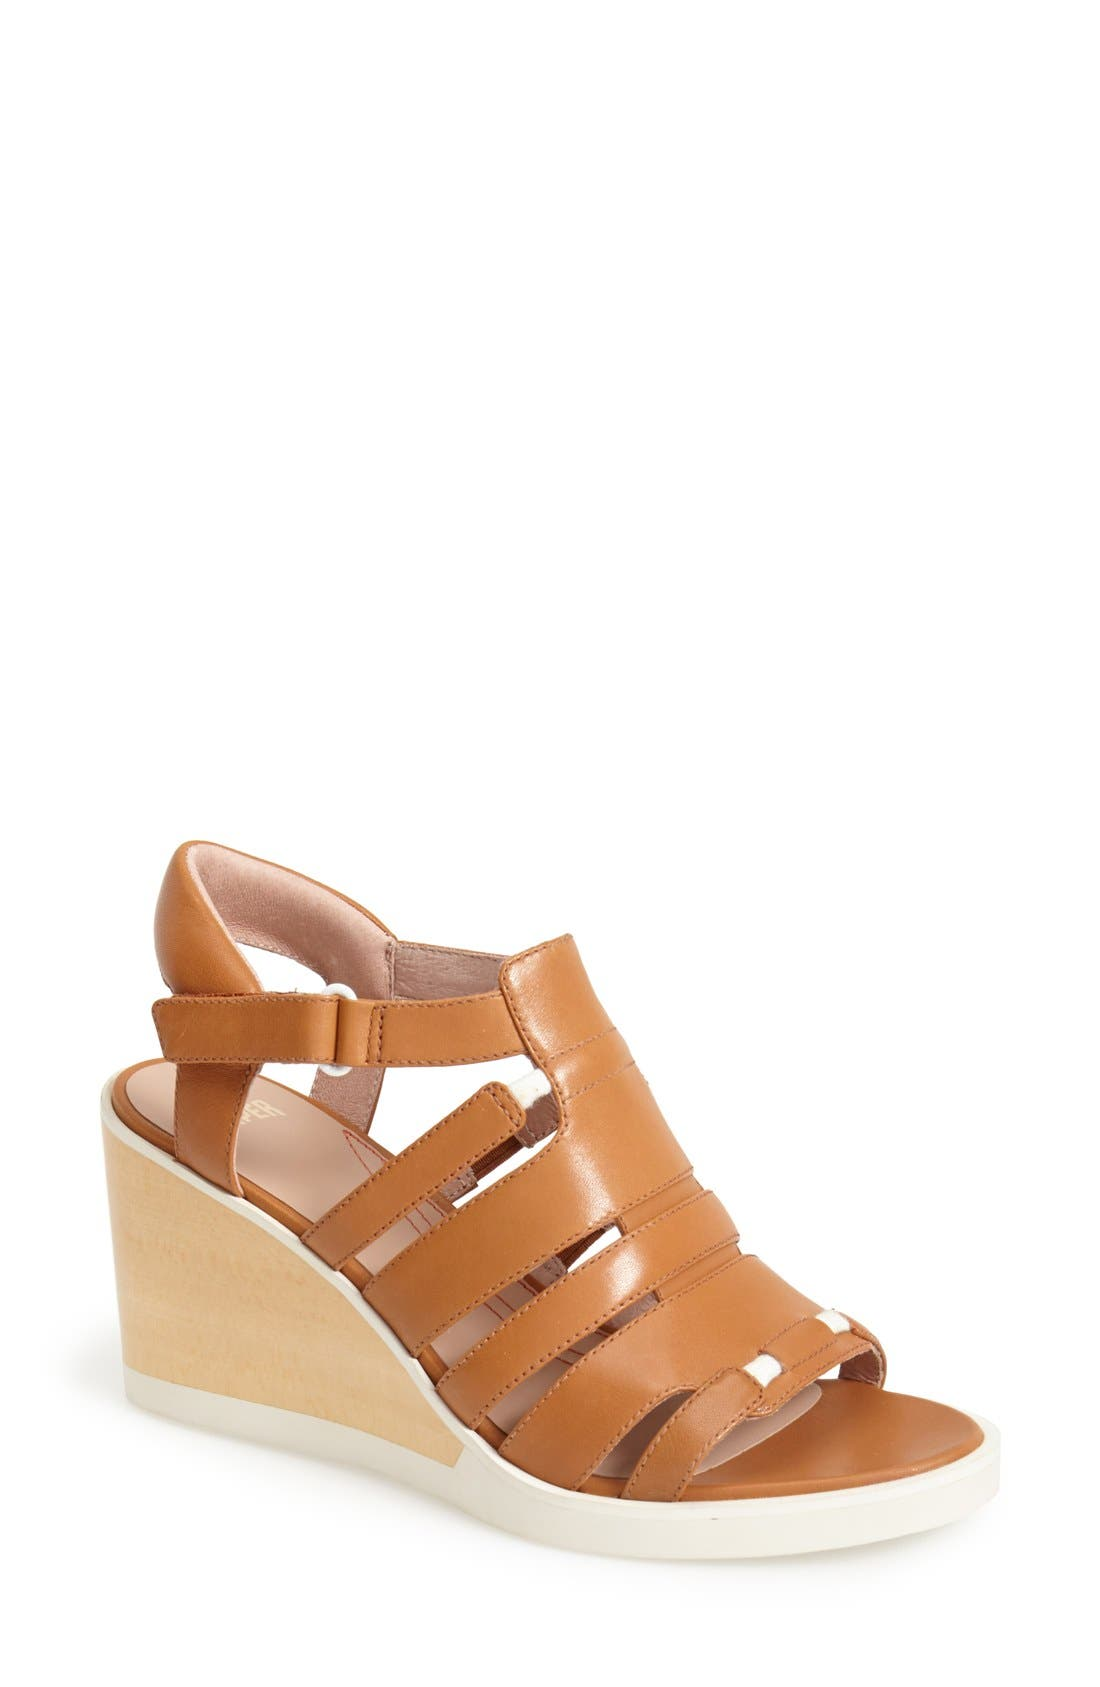 Main Image - Camper 'Limi' Strappy Wedge Sandal (Women)